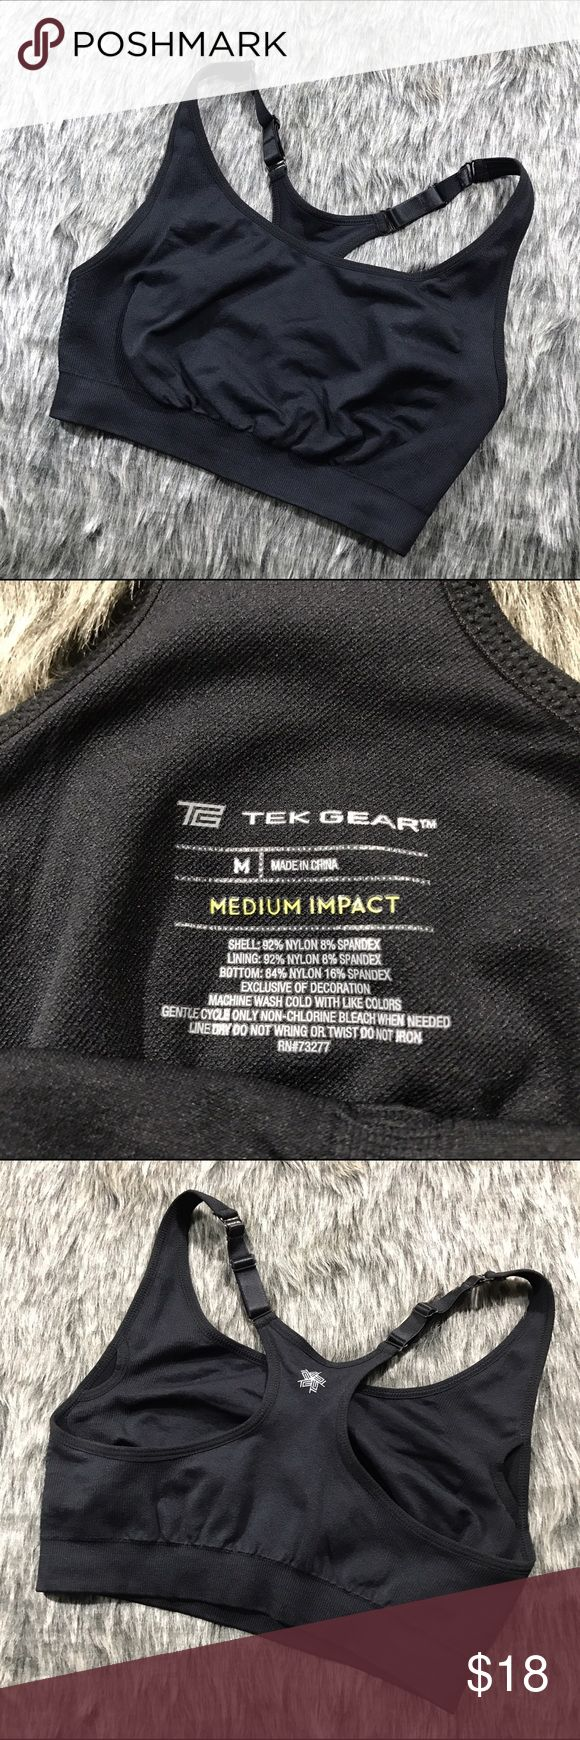 TEK GEAR Medium Impact Sports Bra New without tags sports bra. There are openings to insert cups if necessary. tek gear Intimates & Sleepwear Bras